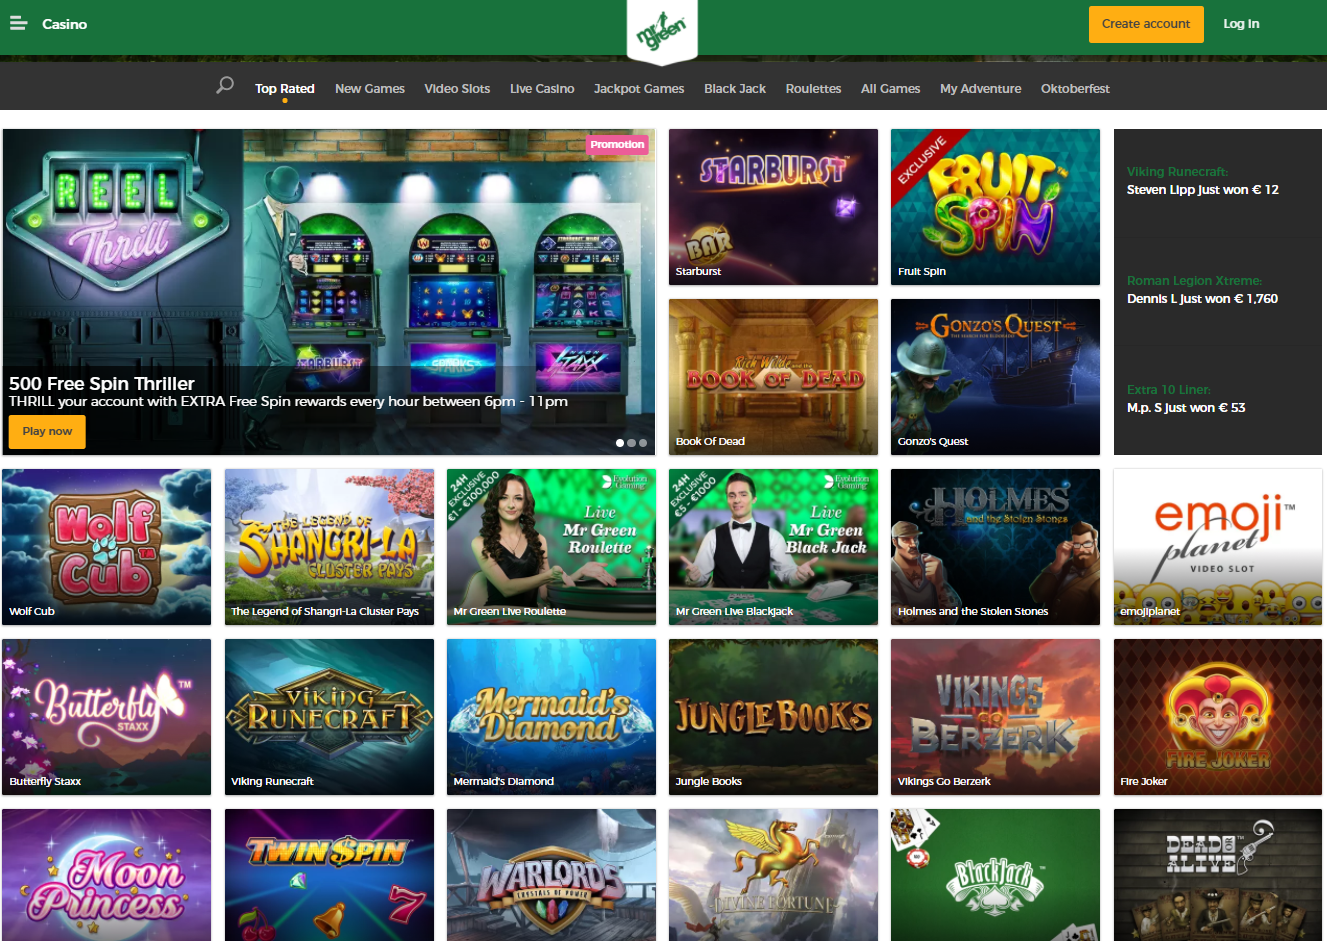 Games to enjoy in CAD at Mr Green Casino